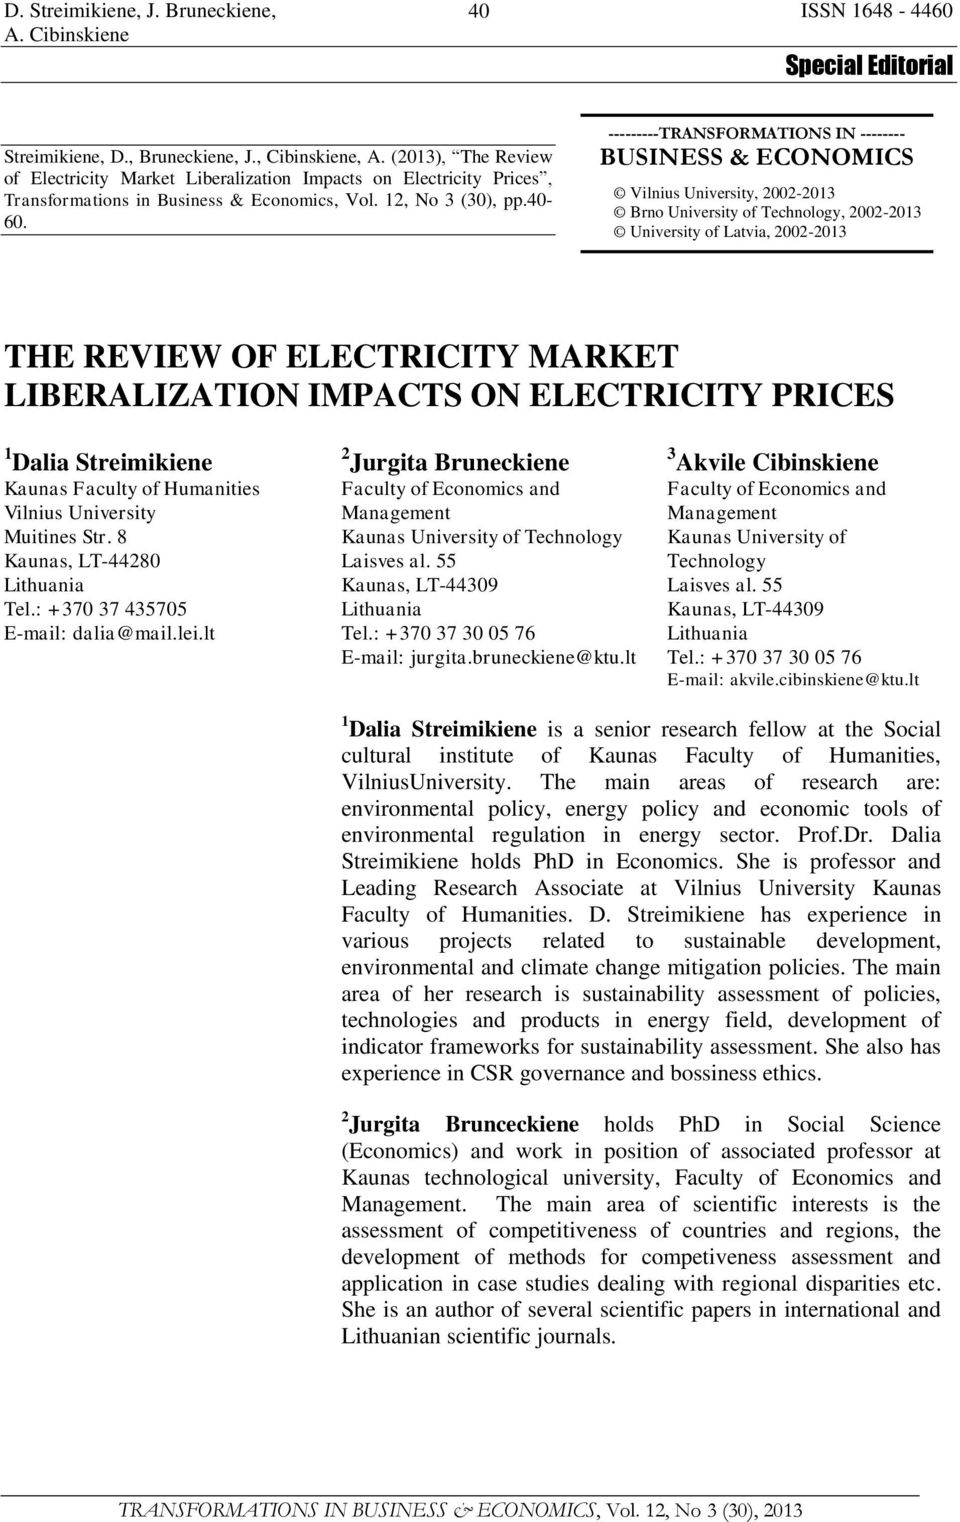 ---------TRANSFORMATIONS IN -------- BUSINESS & ECONOMICS Vilnius University, 2002-2013 Brno University of Technology, 2002-2013 University of Latvia, 2002-2013 THE REVIEW OF ELECTRICITY MARKET